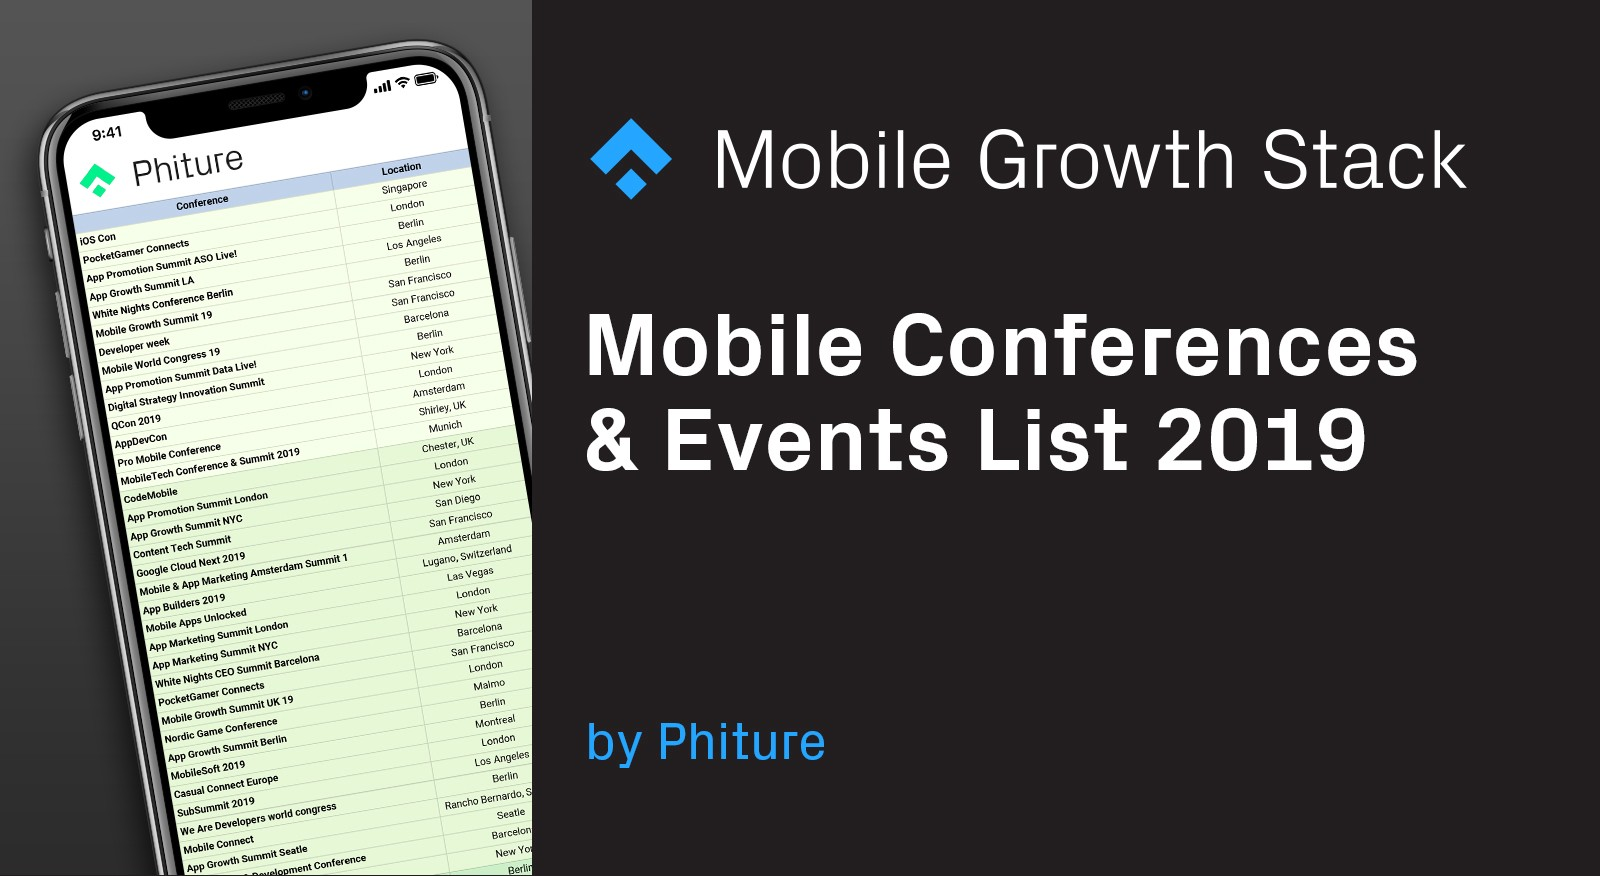 Mobile Conferences and Events List 2019 - The Mobile Growth Stack